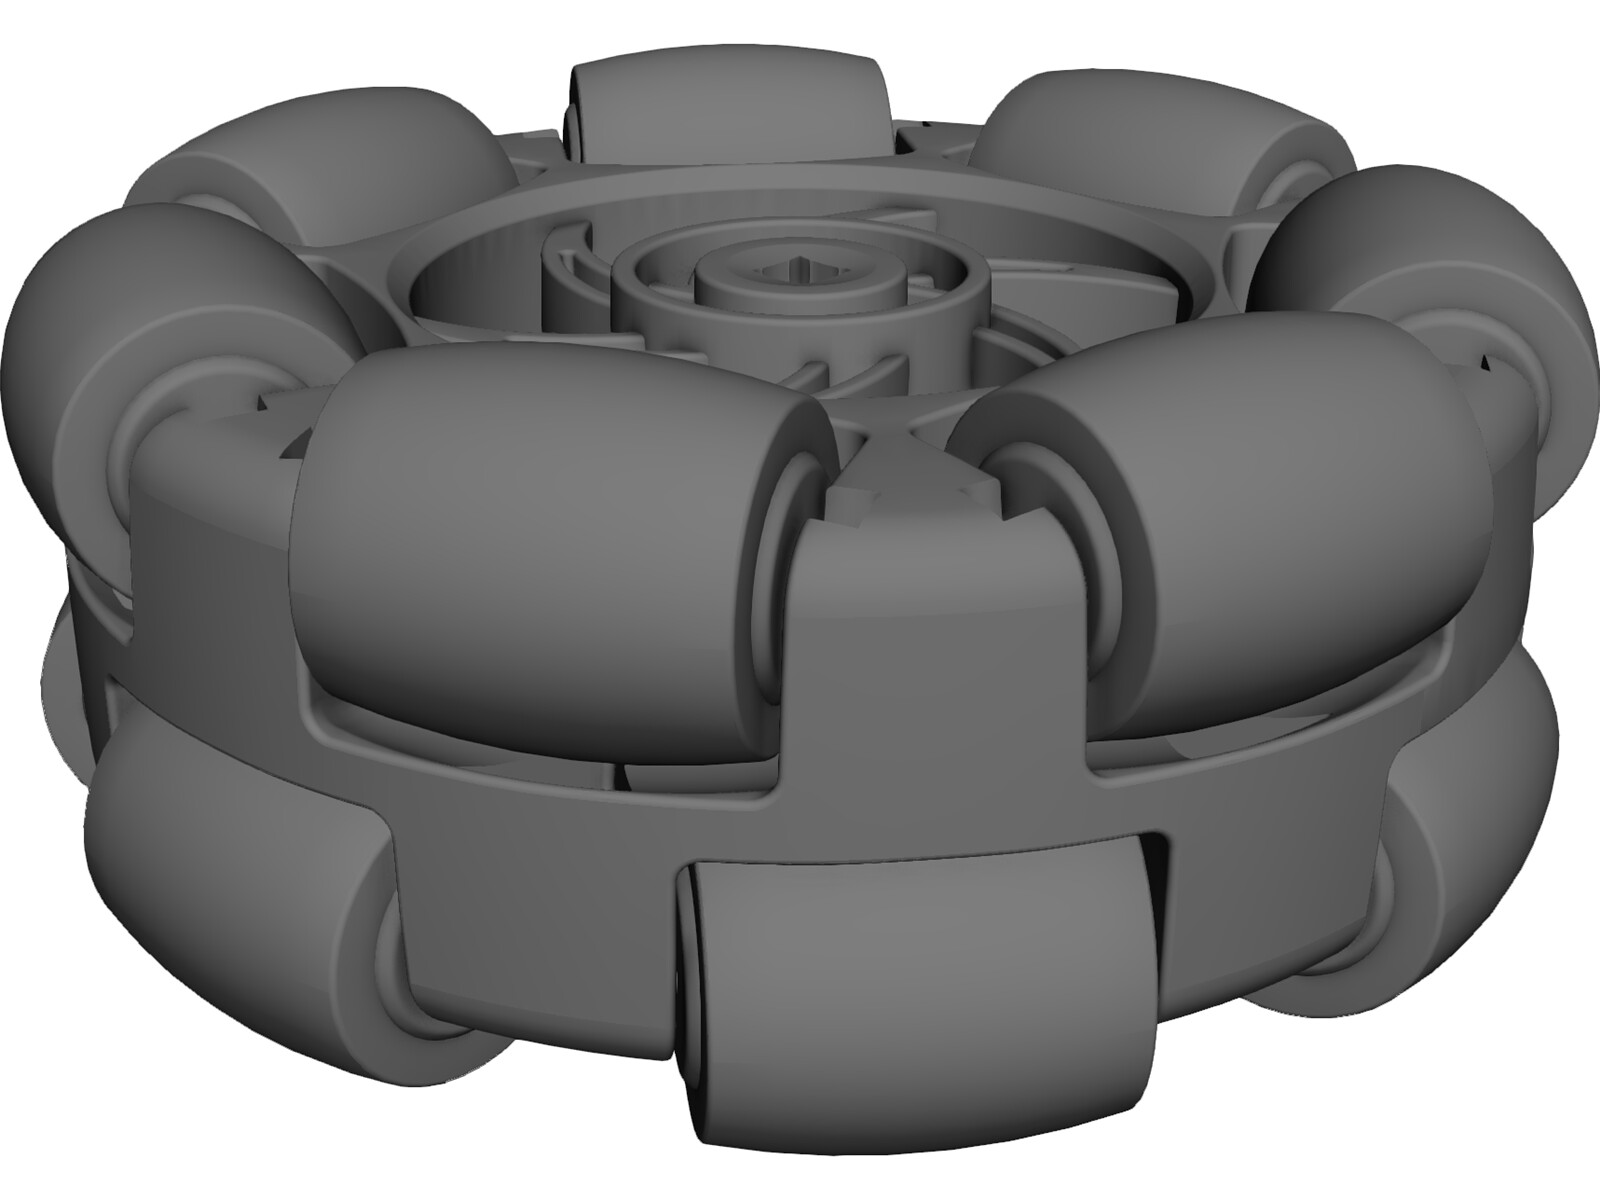 Omni Wheel 4 inch 3D CAD Model